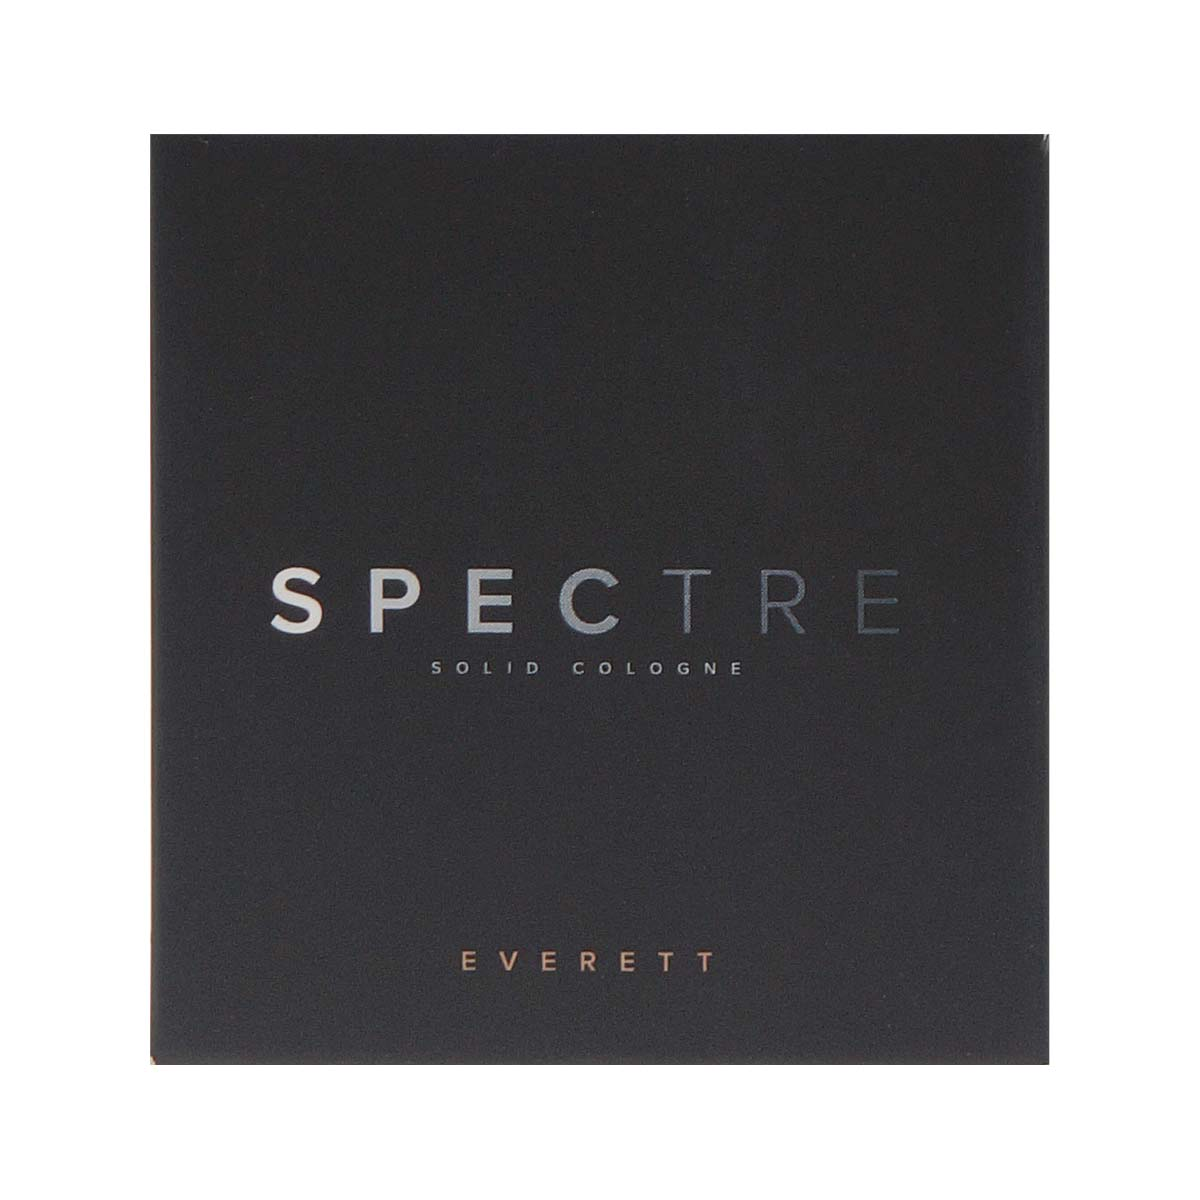 Spectre Everett Solid Cologne 25g